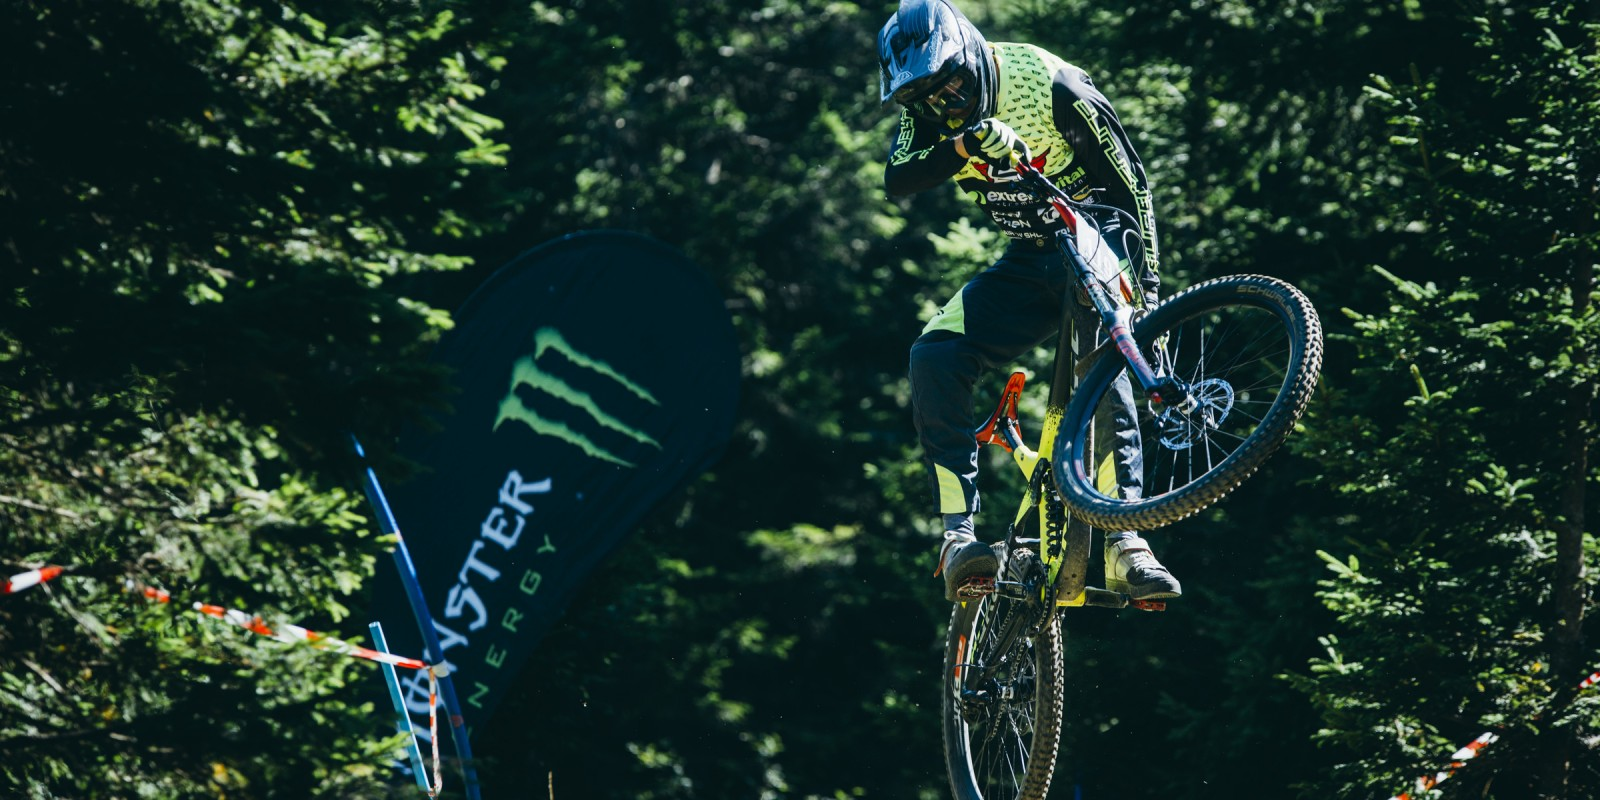 Pneultimate downhill race of Slovenian DH cup at Soriška planina, Slovenia.